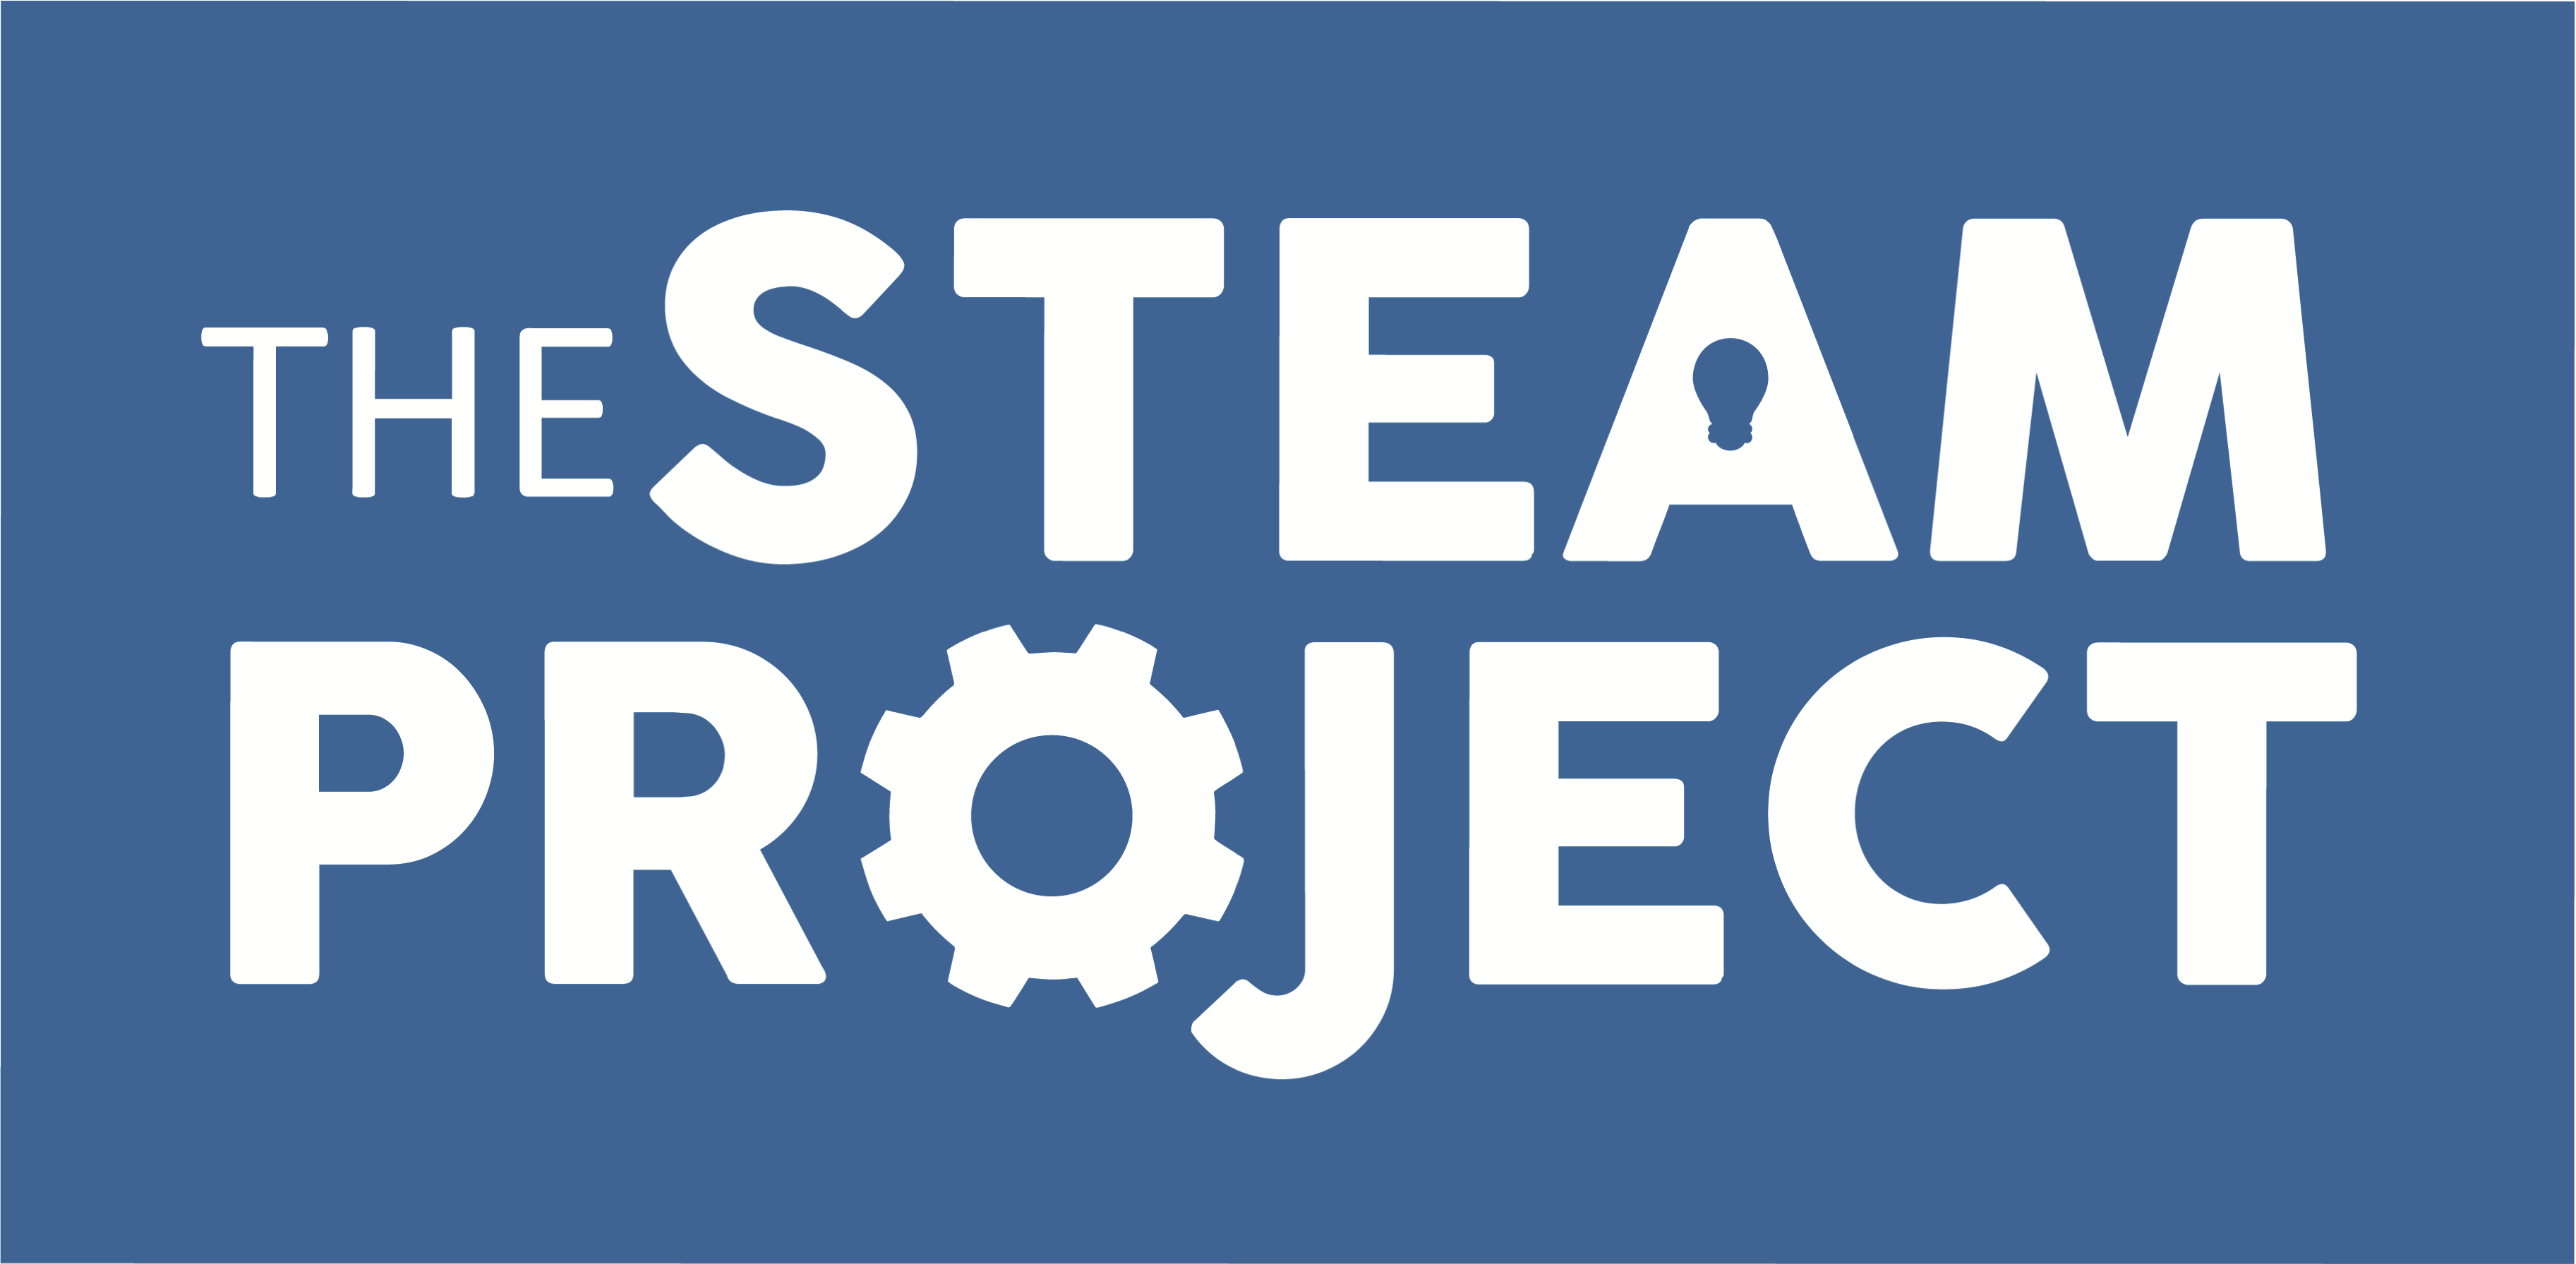 THE STEAM PROJECT (Completed Grade 1 - 6)